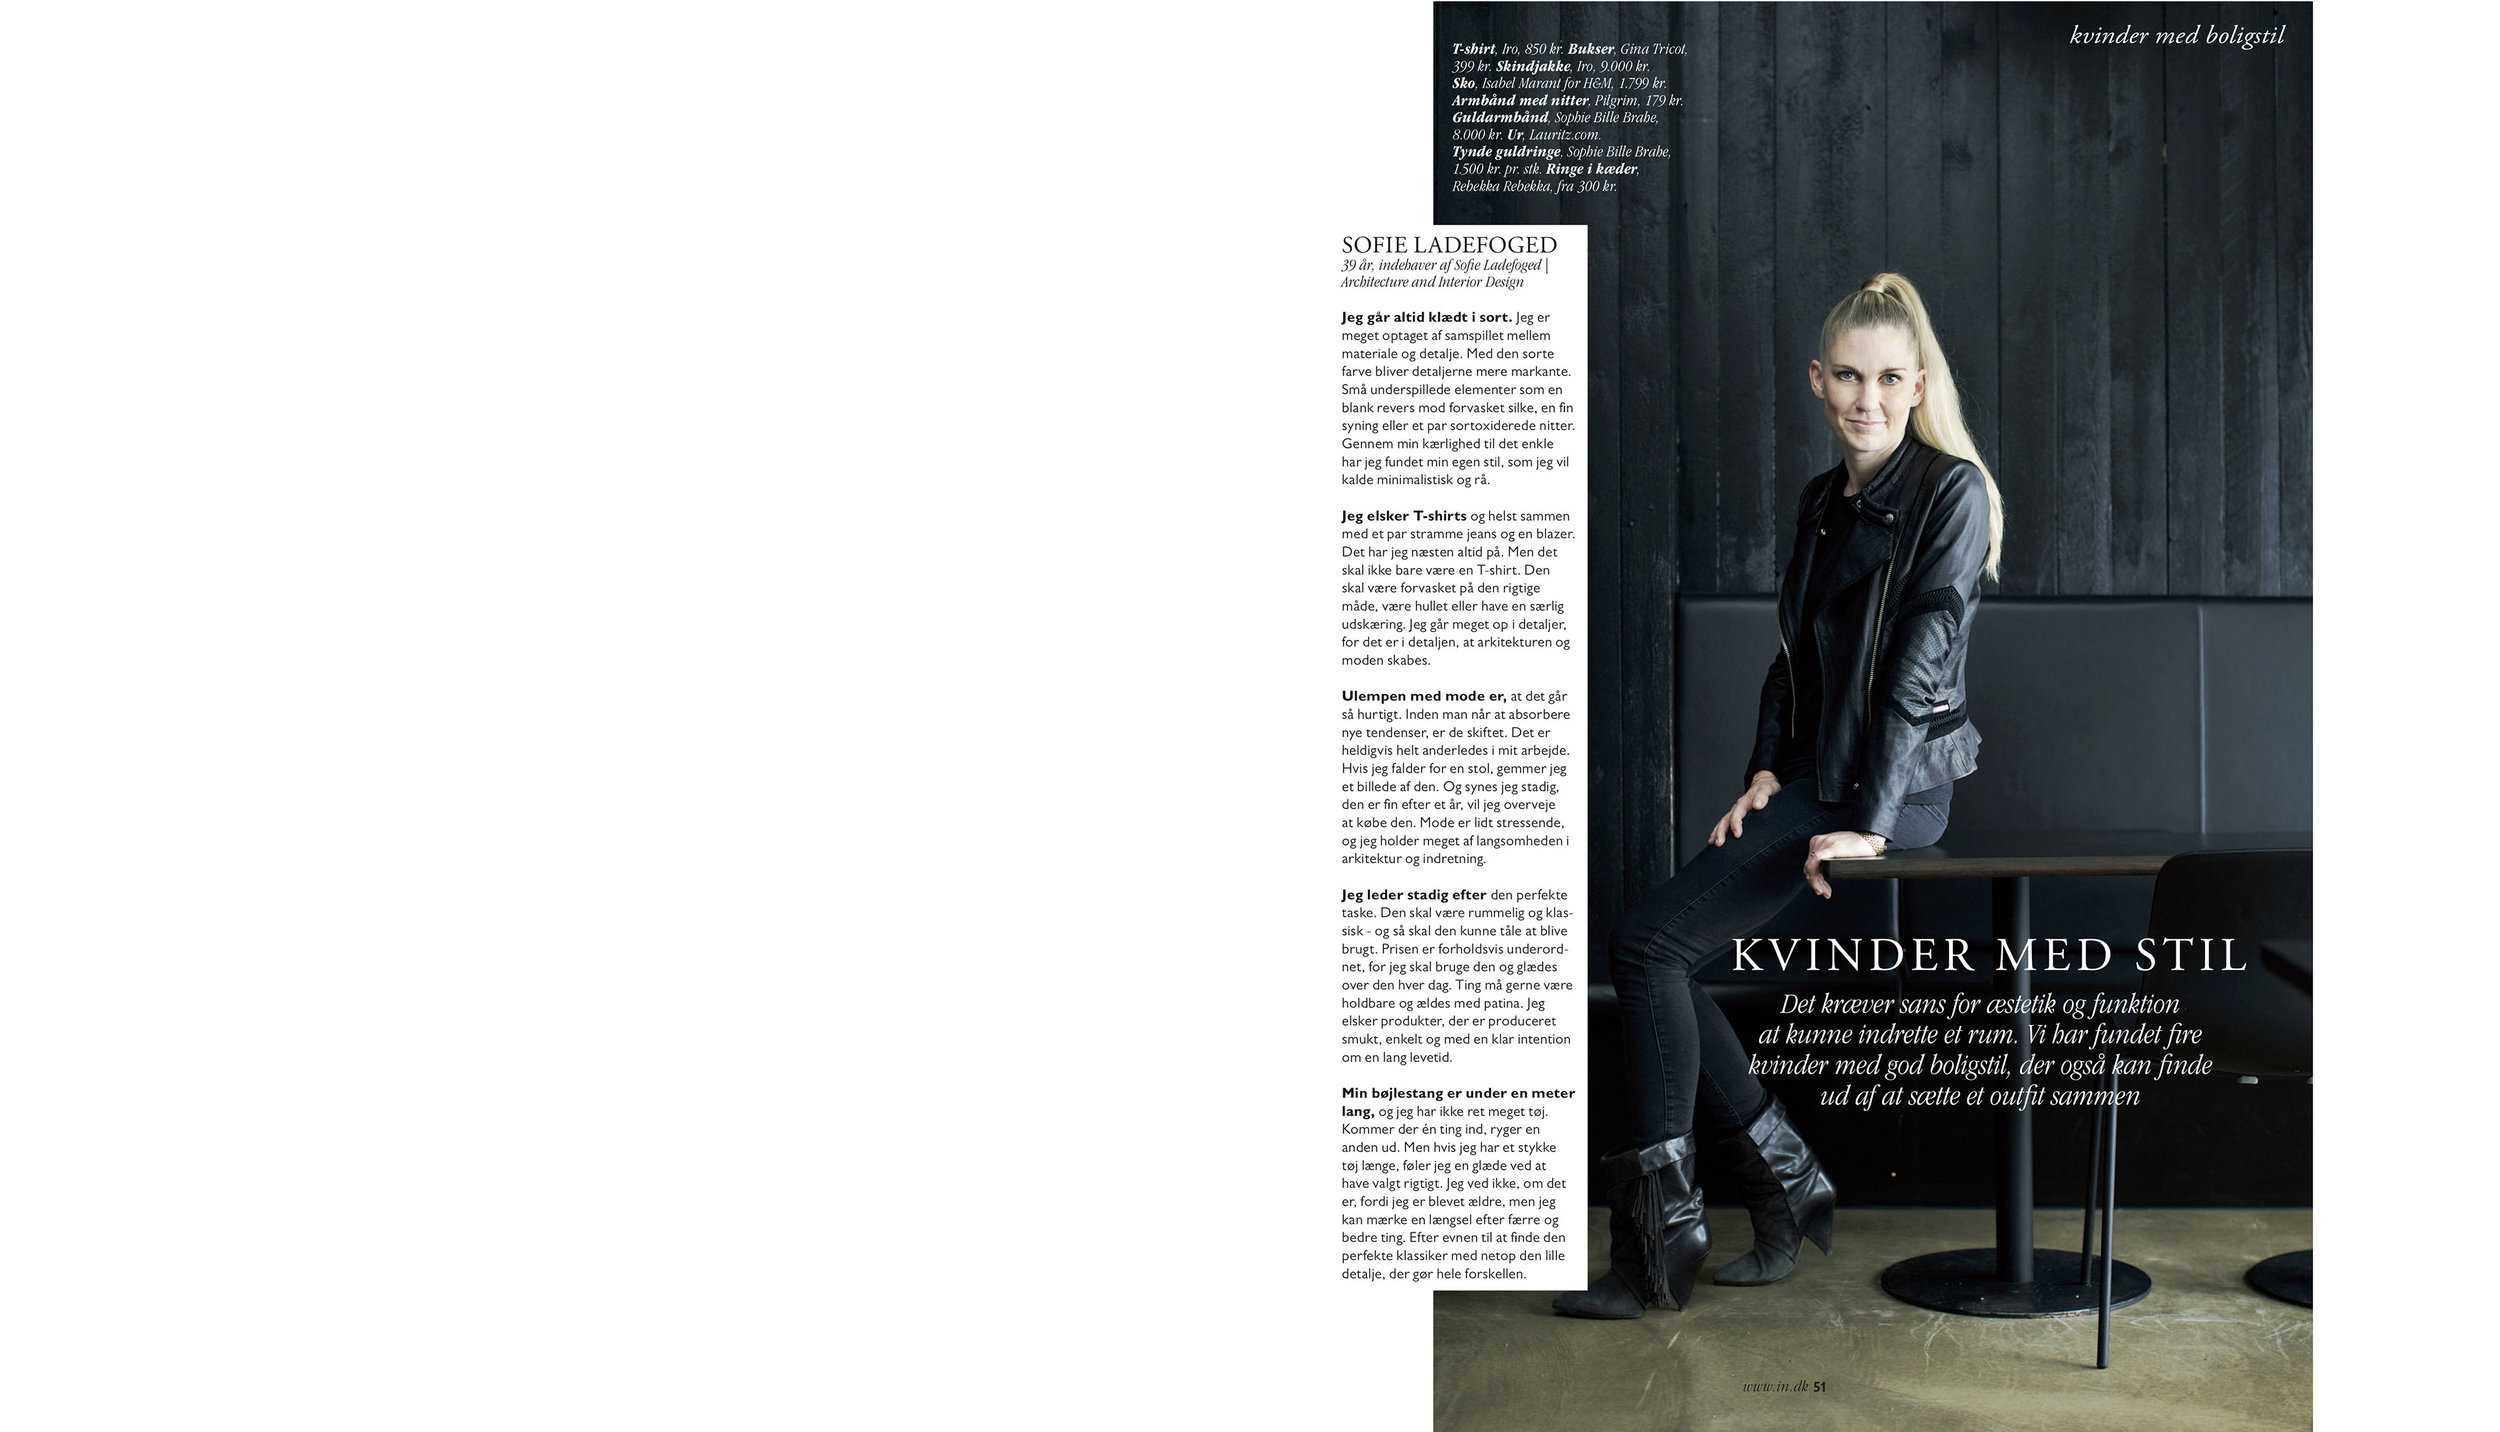 sofie-ladefoged-press-modemagasinet-in-2014-page-02.jpg